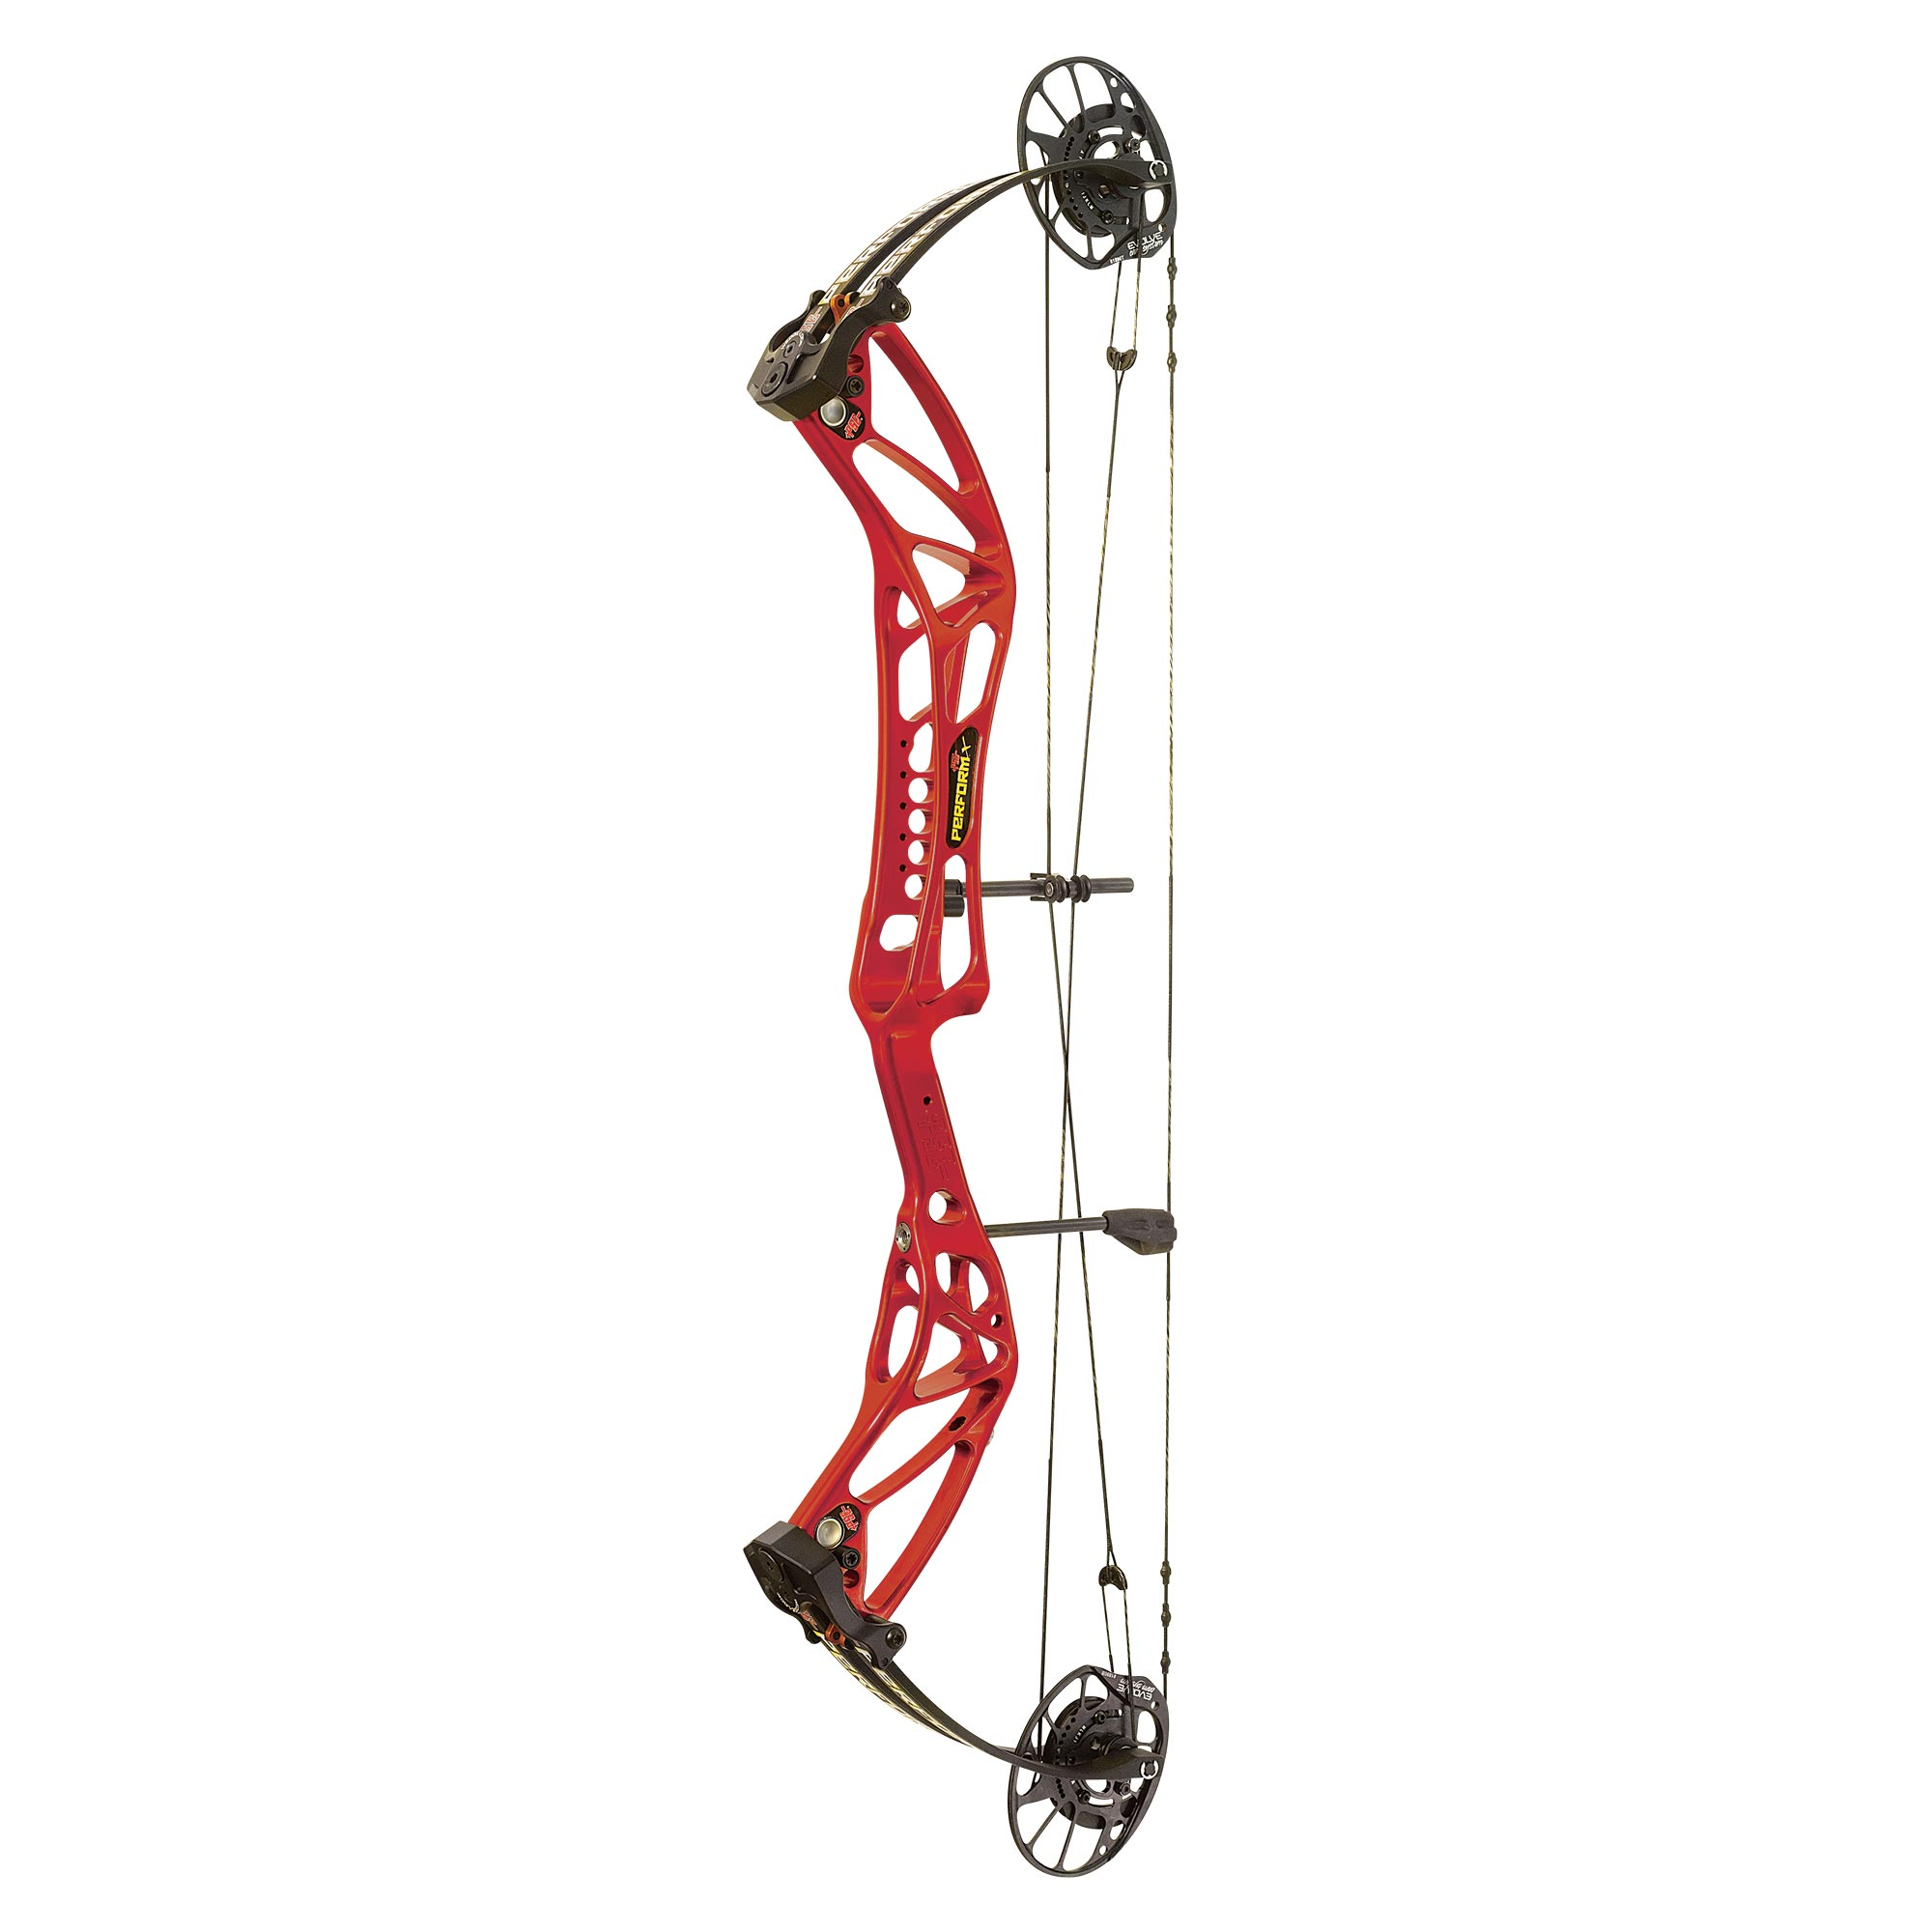 2020 PSE Perform-X SD in Black Cherry